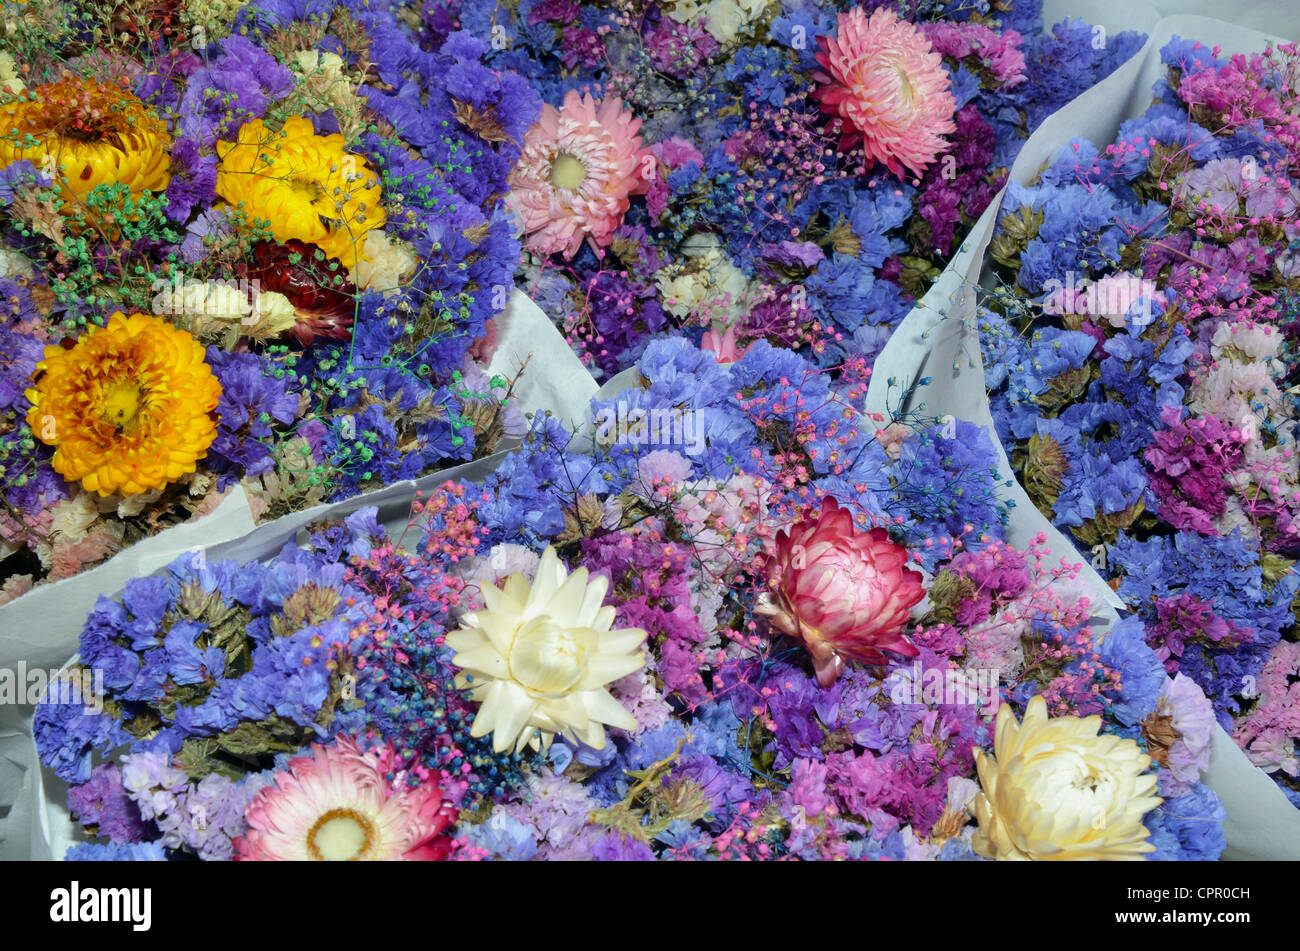 Colorful spring bouquet of flowers - Stock Image